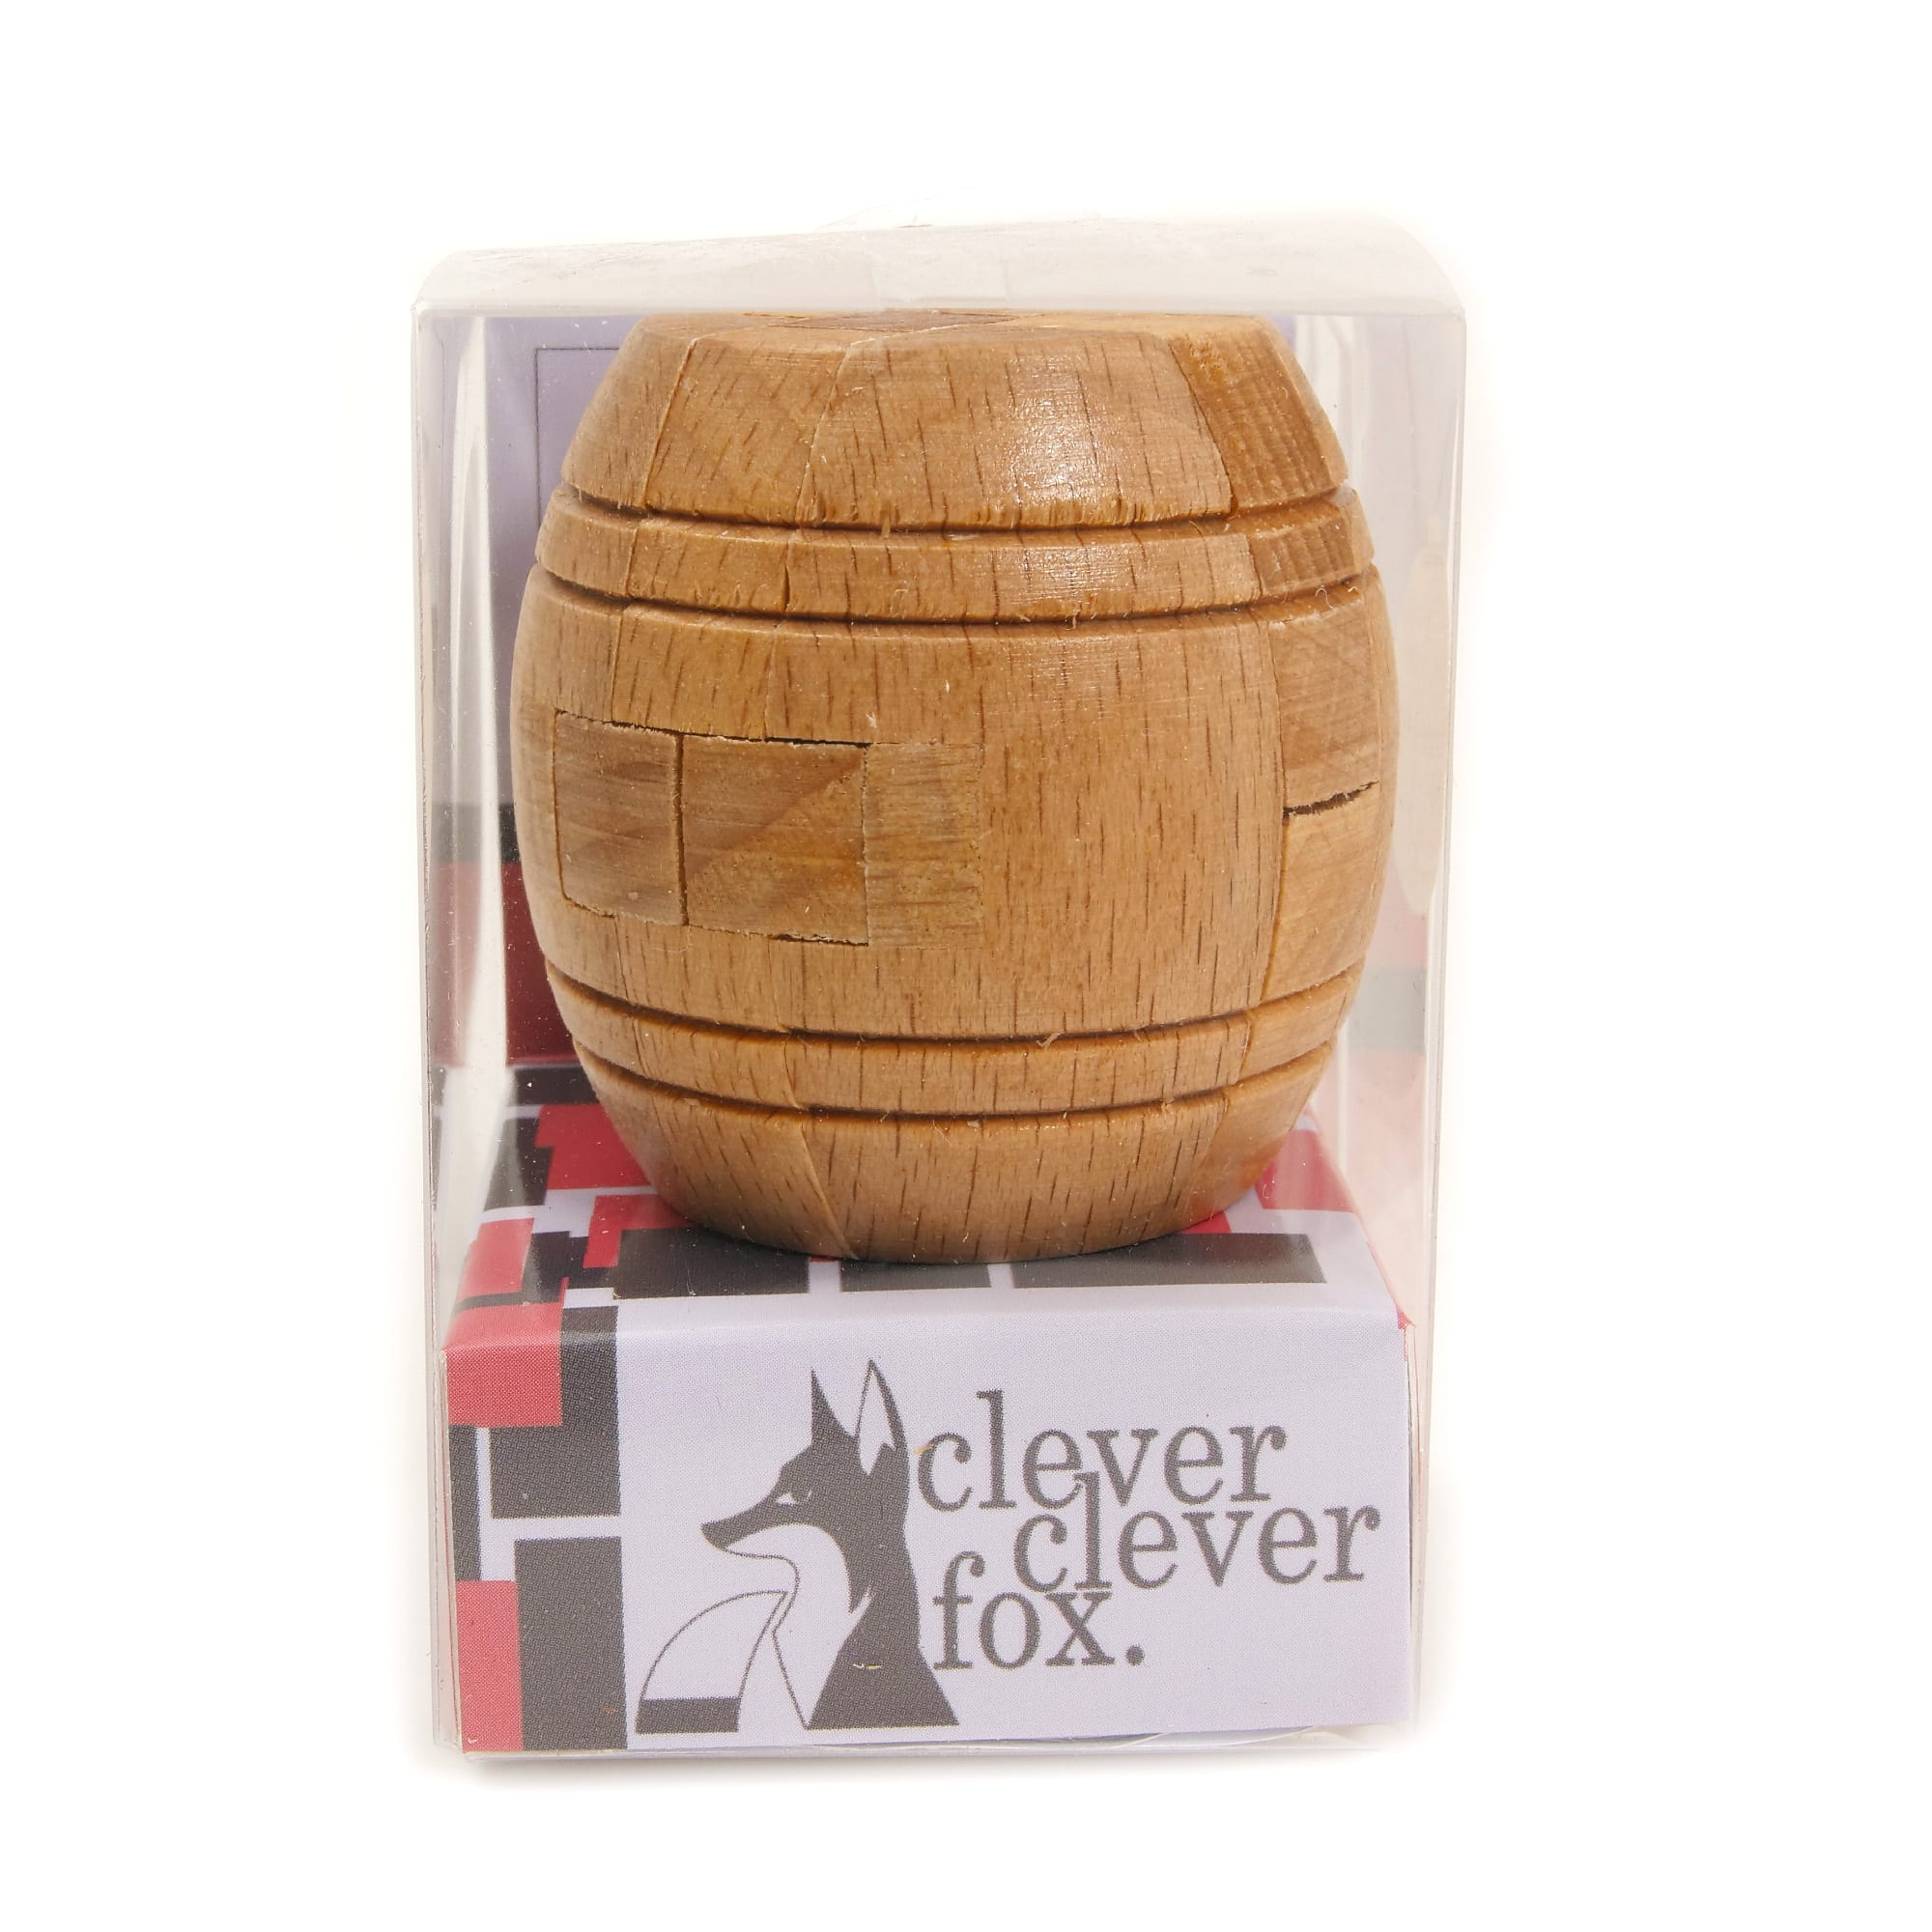 Clever Fox: Clever Fox Wooden Puzzle - Wooden Barrel